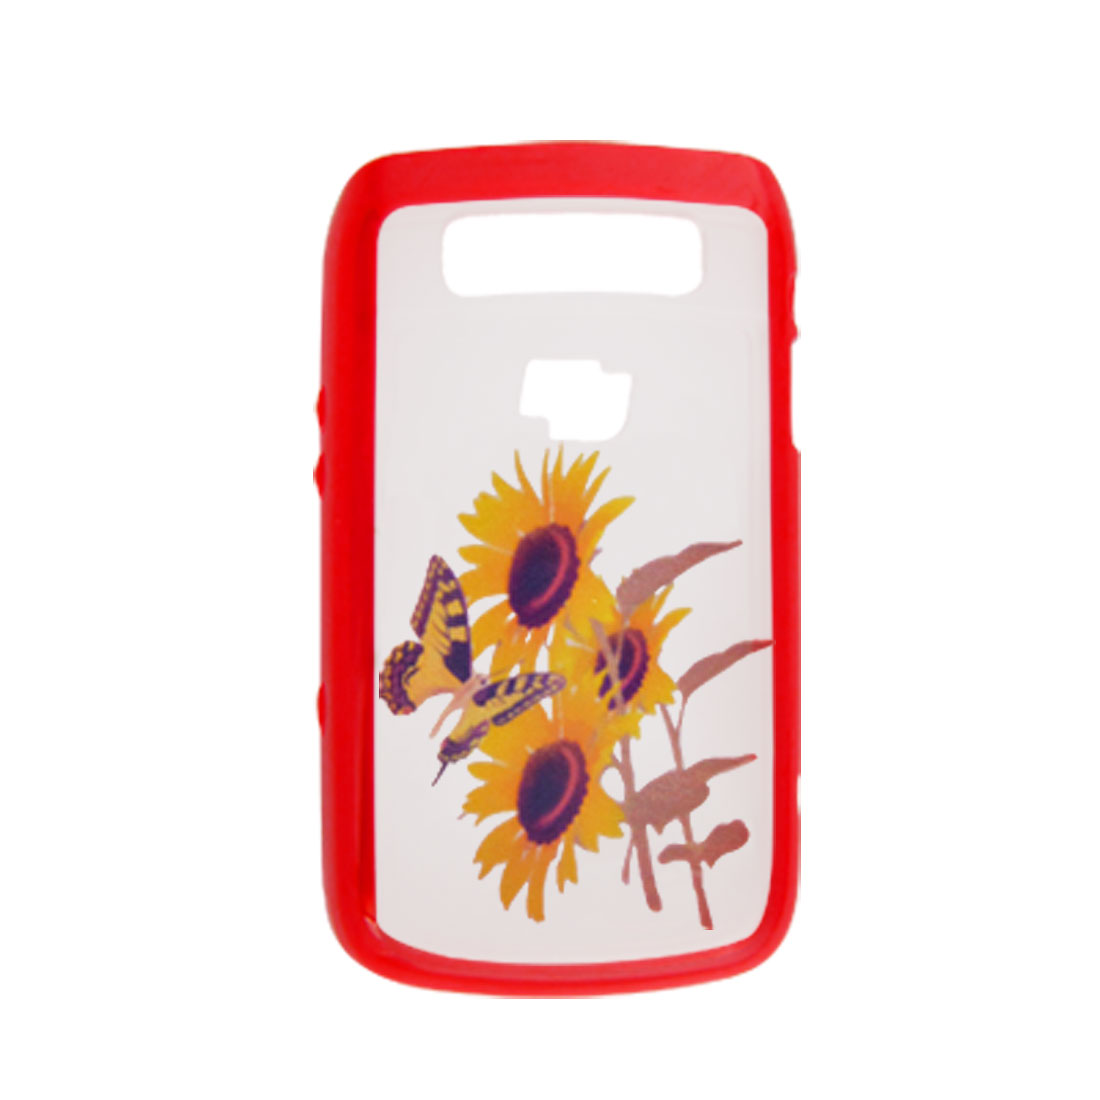 Sunflower Butterfly Soft Side Cover Red for Blackberry 9700